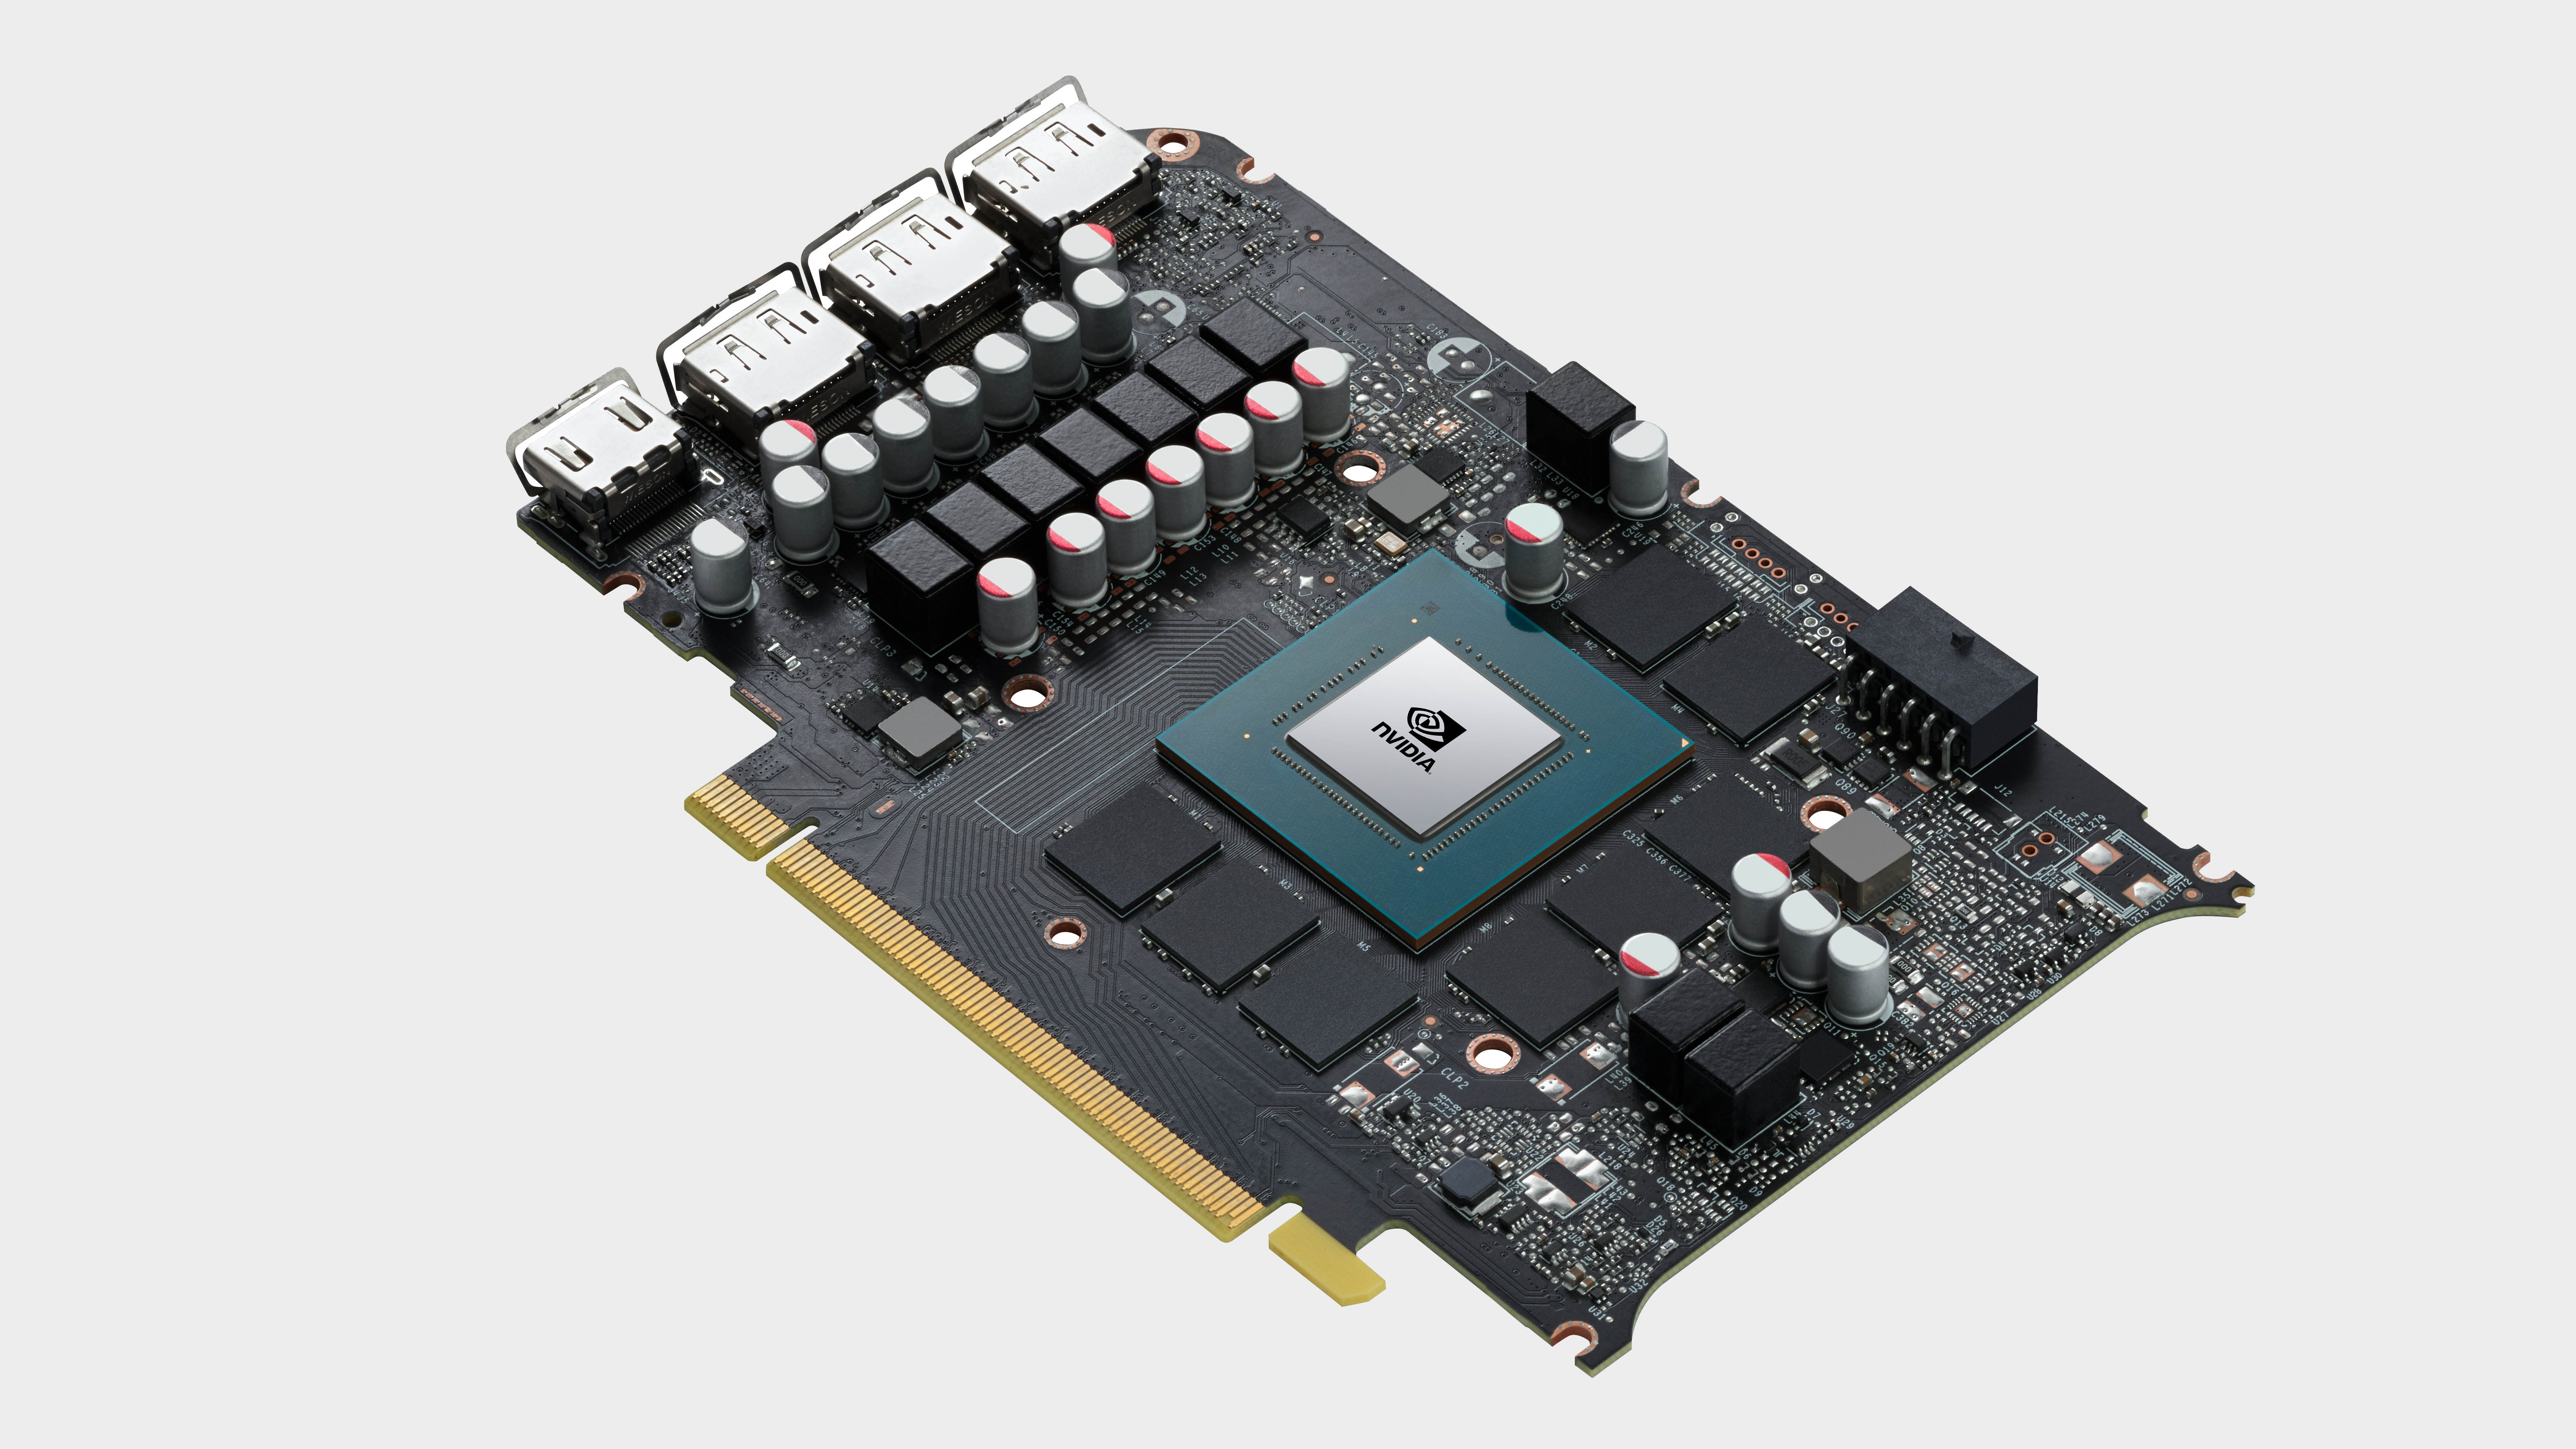 Retailers say Nvidia RTX 3060 Ti launch stock is like all the 3080, 3090, and 3070 cards combined